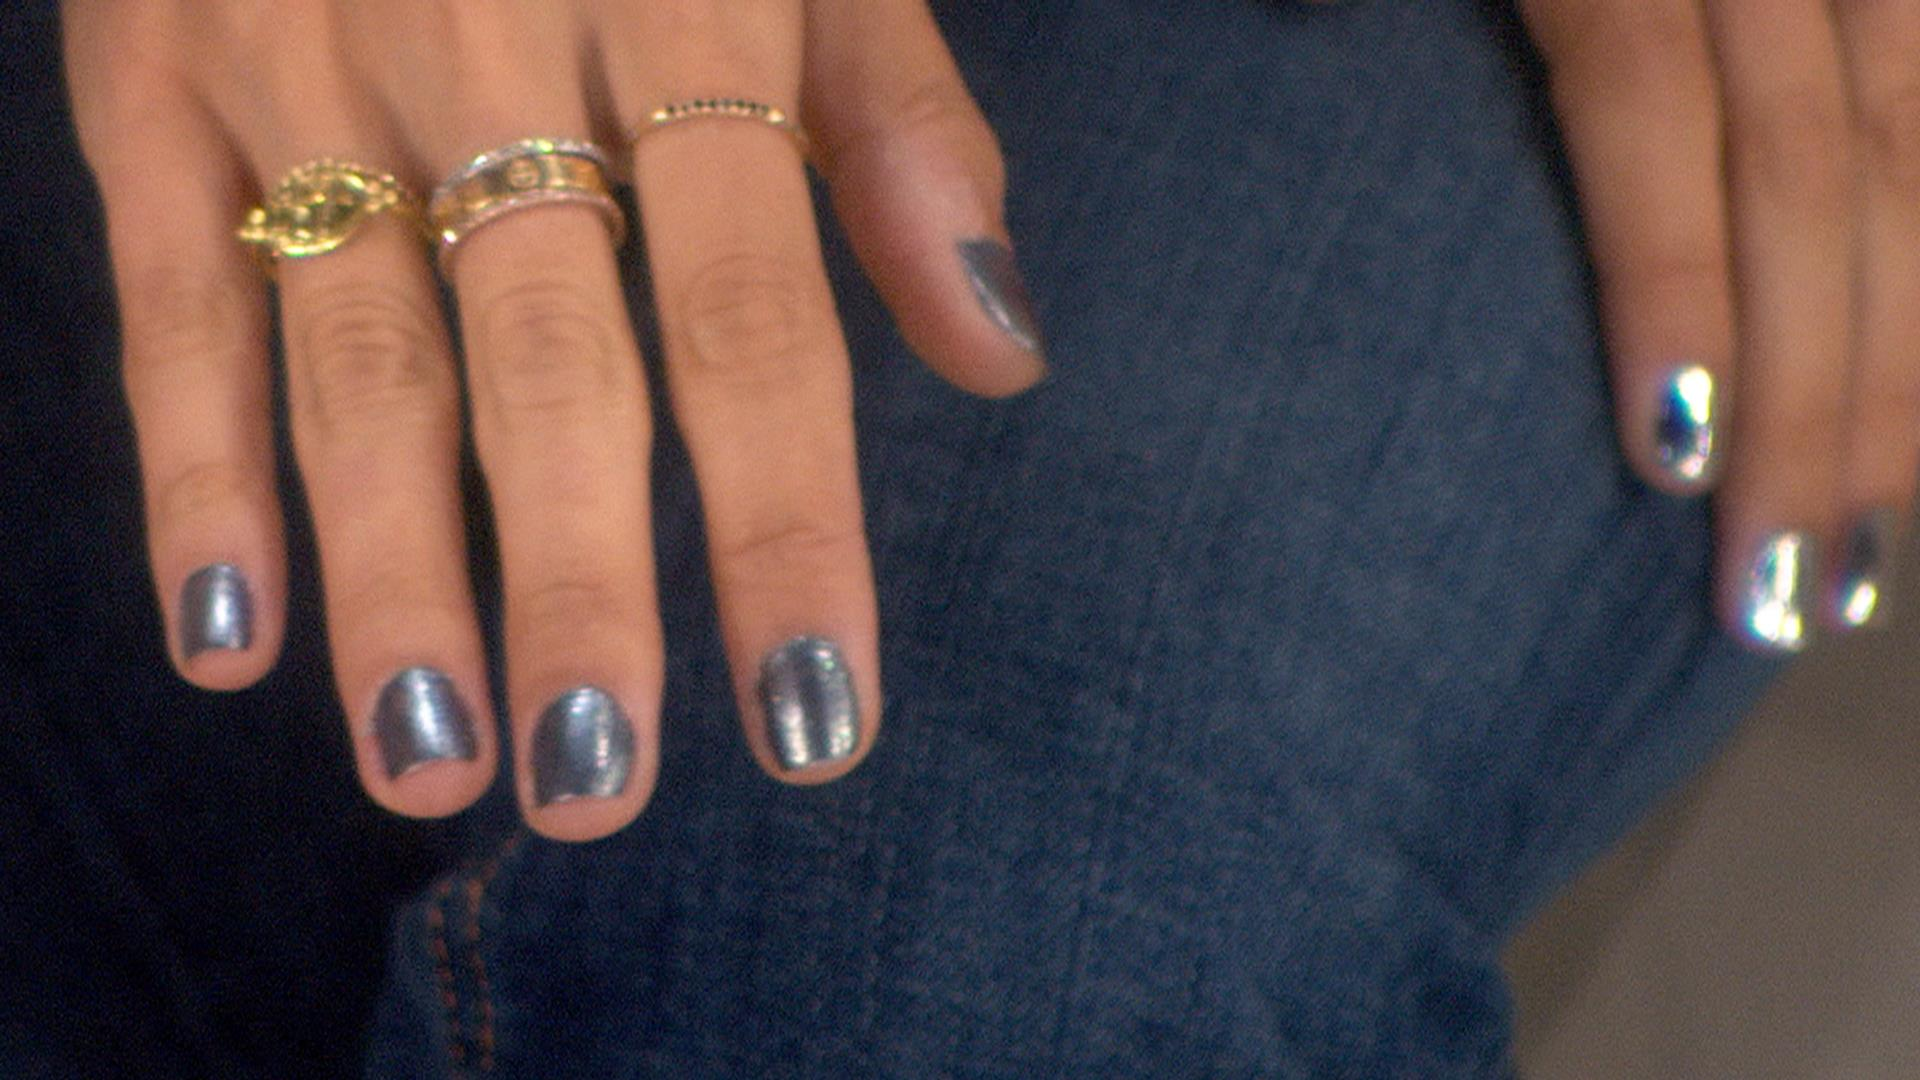 Chrome nails: Here\'s how to get the shiny new trend - NBC News